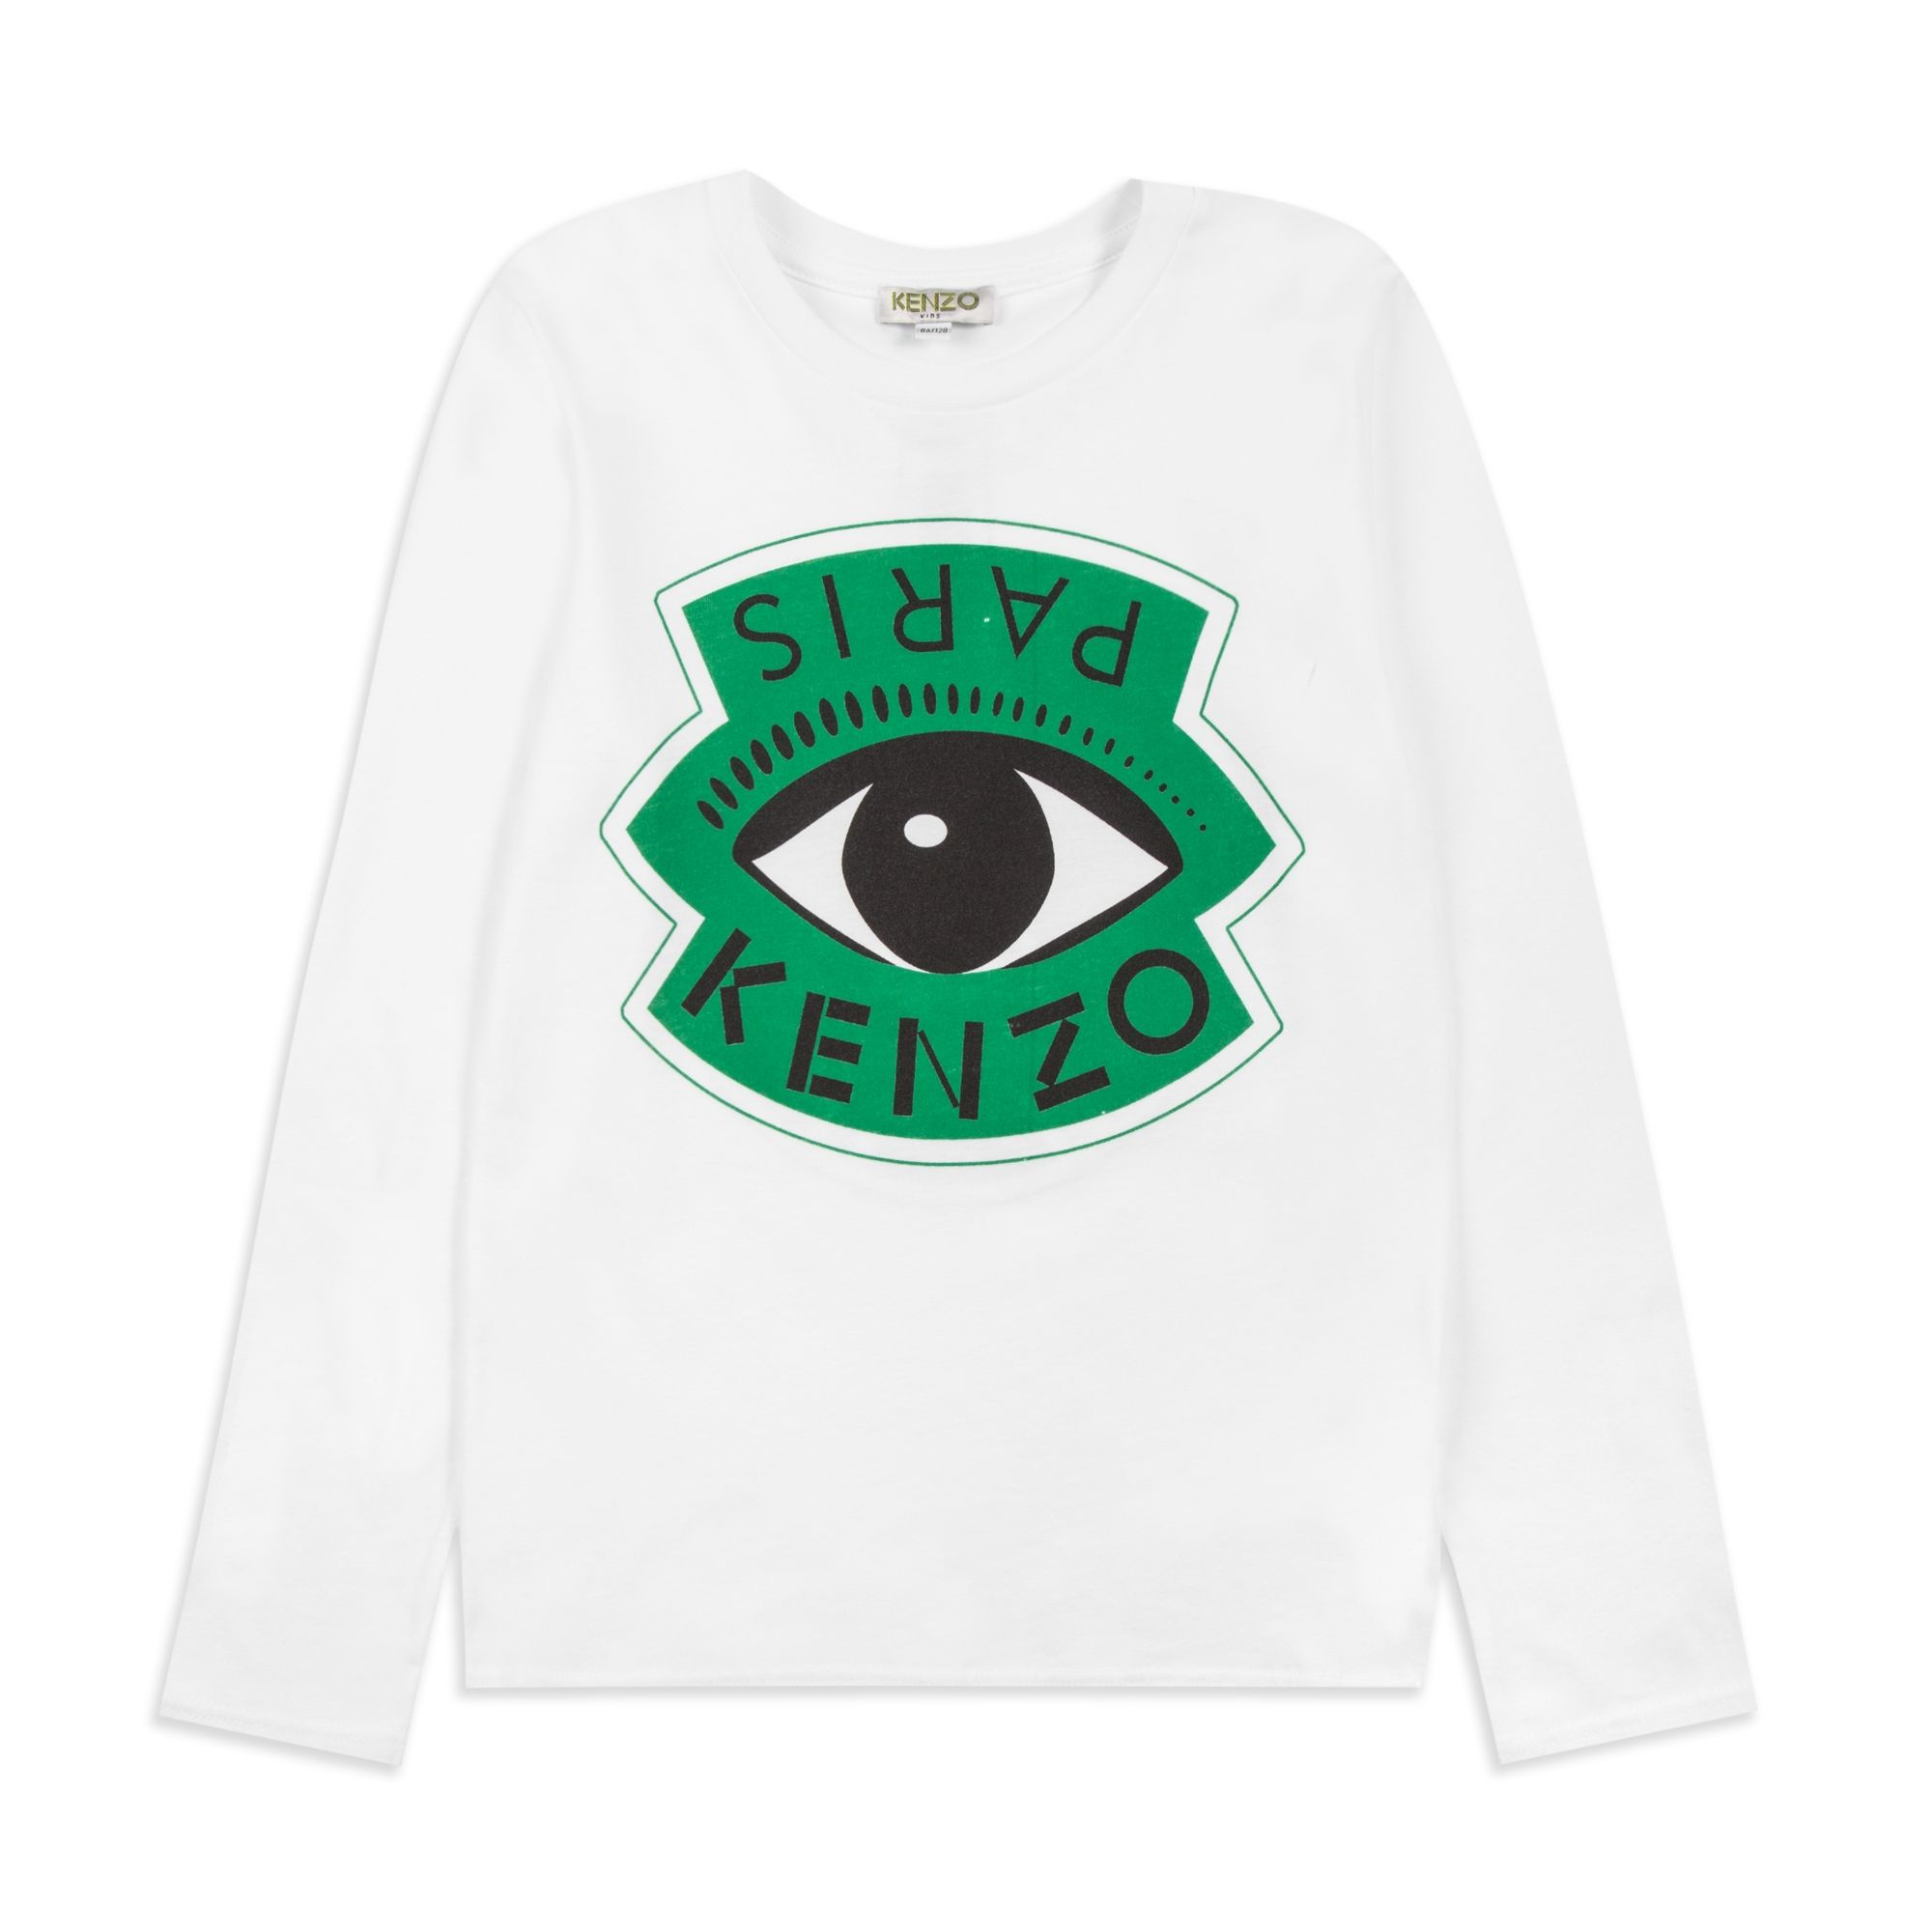 20270b1e KENZO Boys LS Eye & Eiffel Tower T-Shirt - White Boys long sleeve t-shirt •  Soft cotton jersey • Round neckline • Branded eye print • Reverse Eiffel  Tower ...